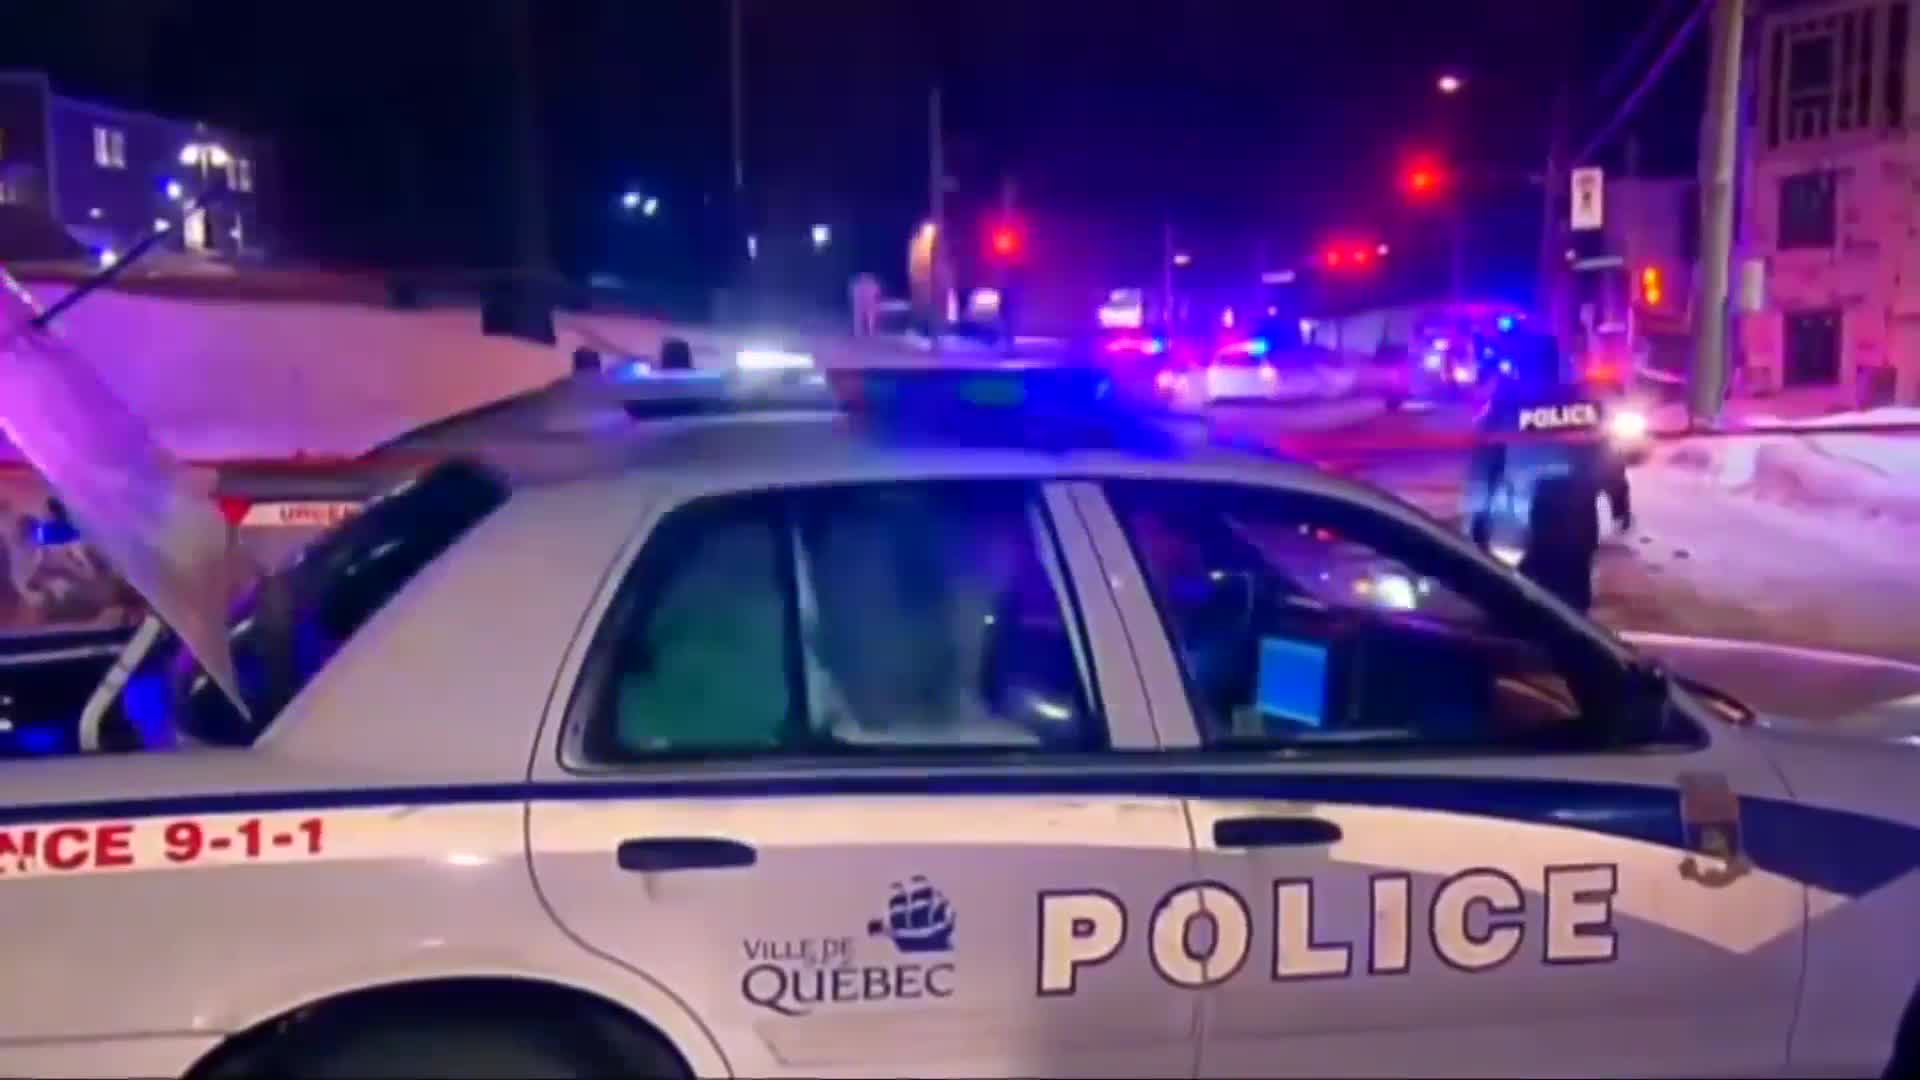 Canada Calls Out Fox News For 'False And Misleading' Quebec Shooter Tweets